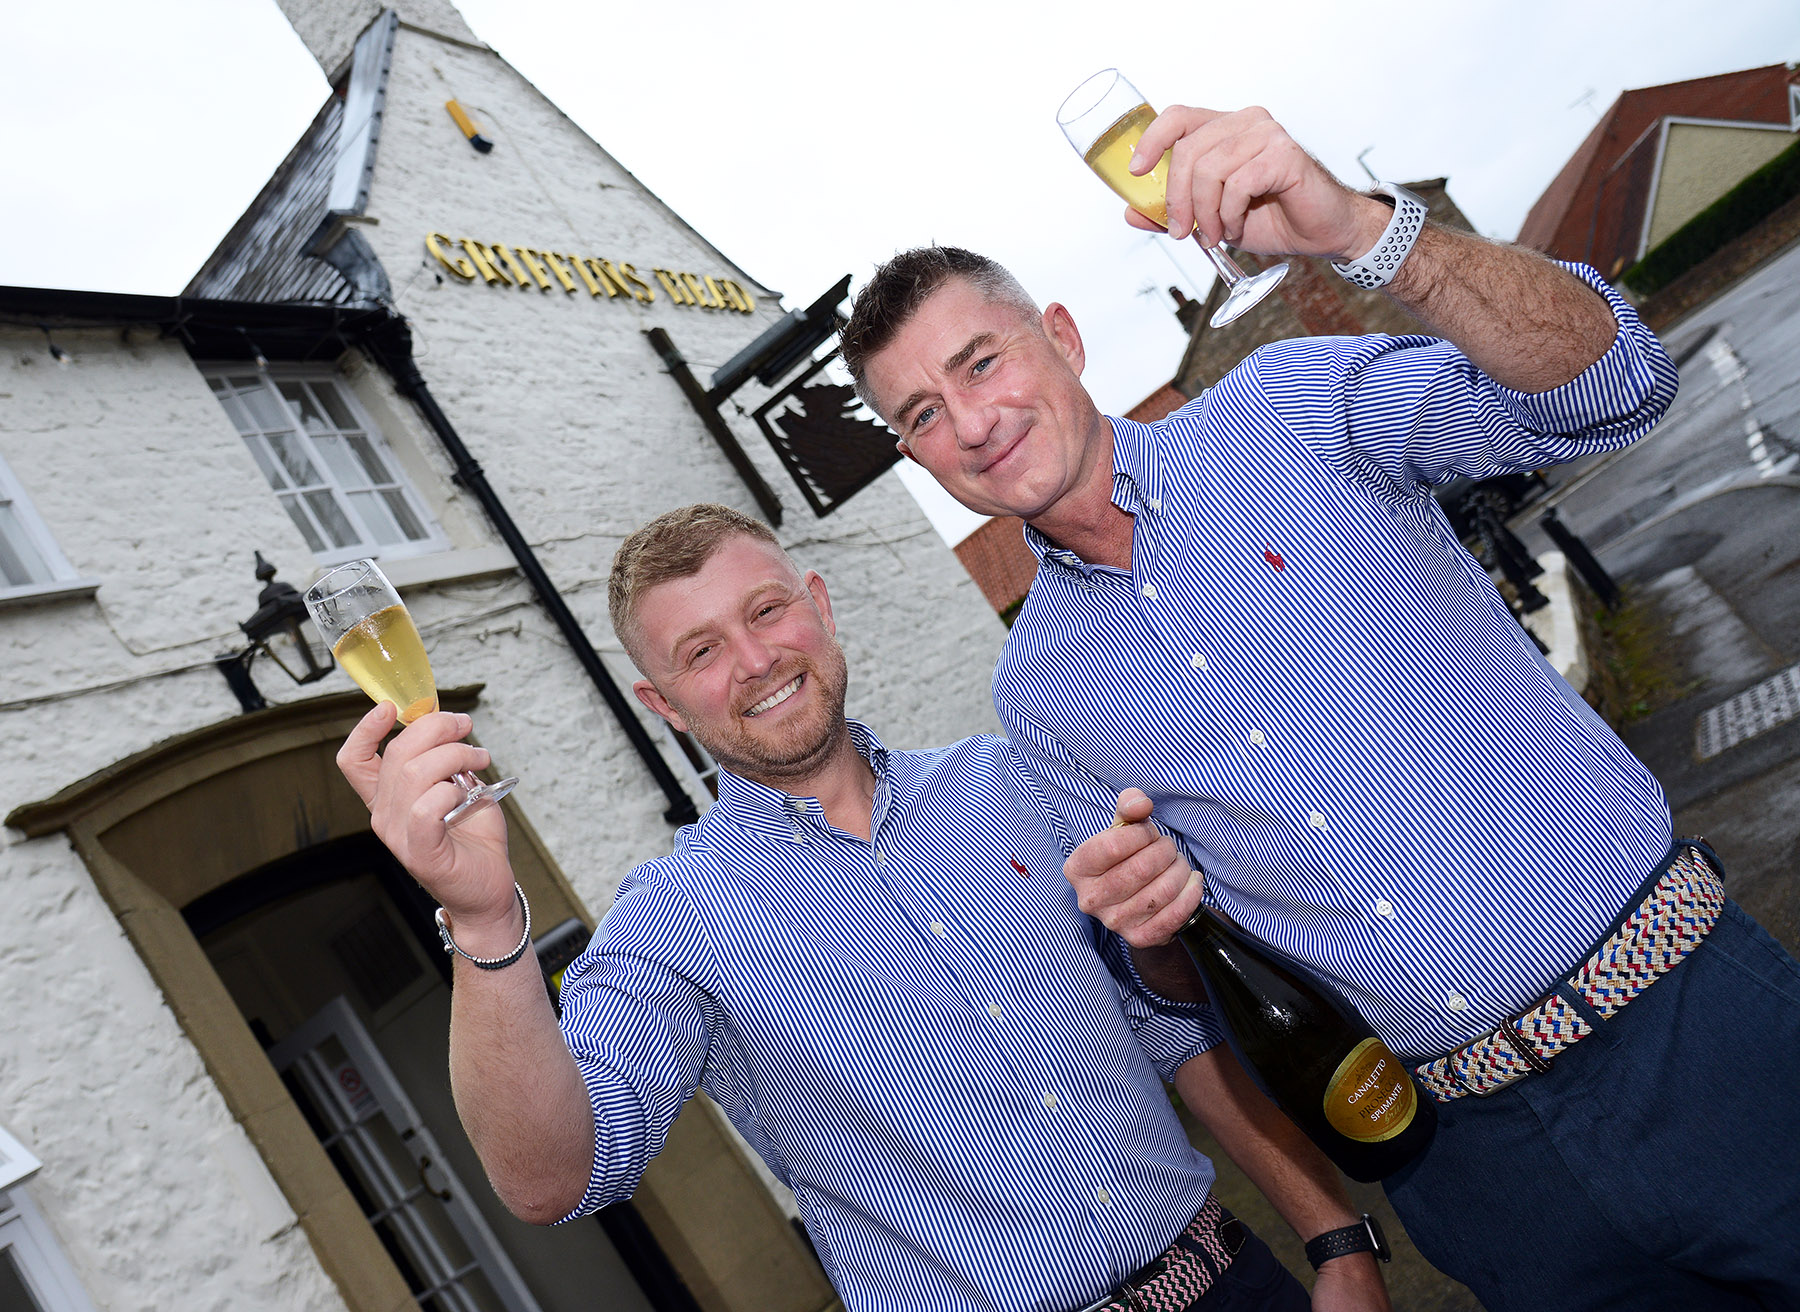 Ross and Marc raise a glass as the new landlords of Nottinghamshire pub